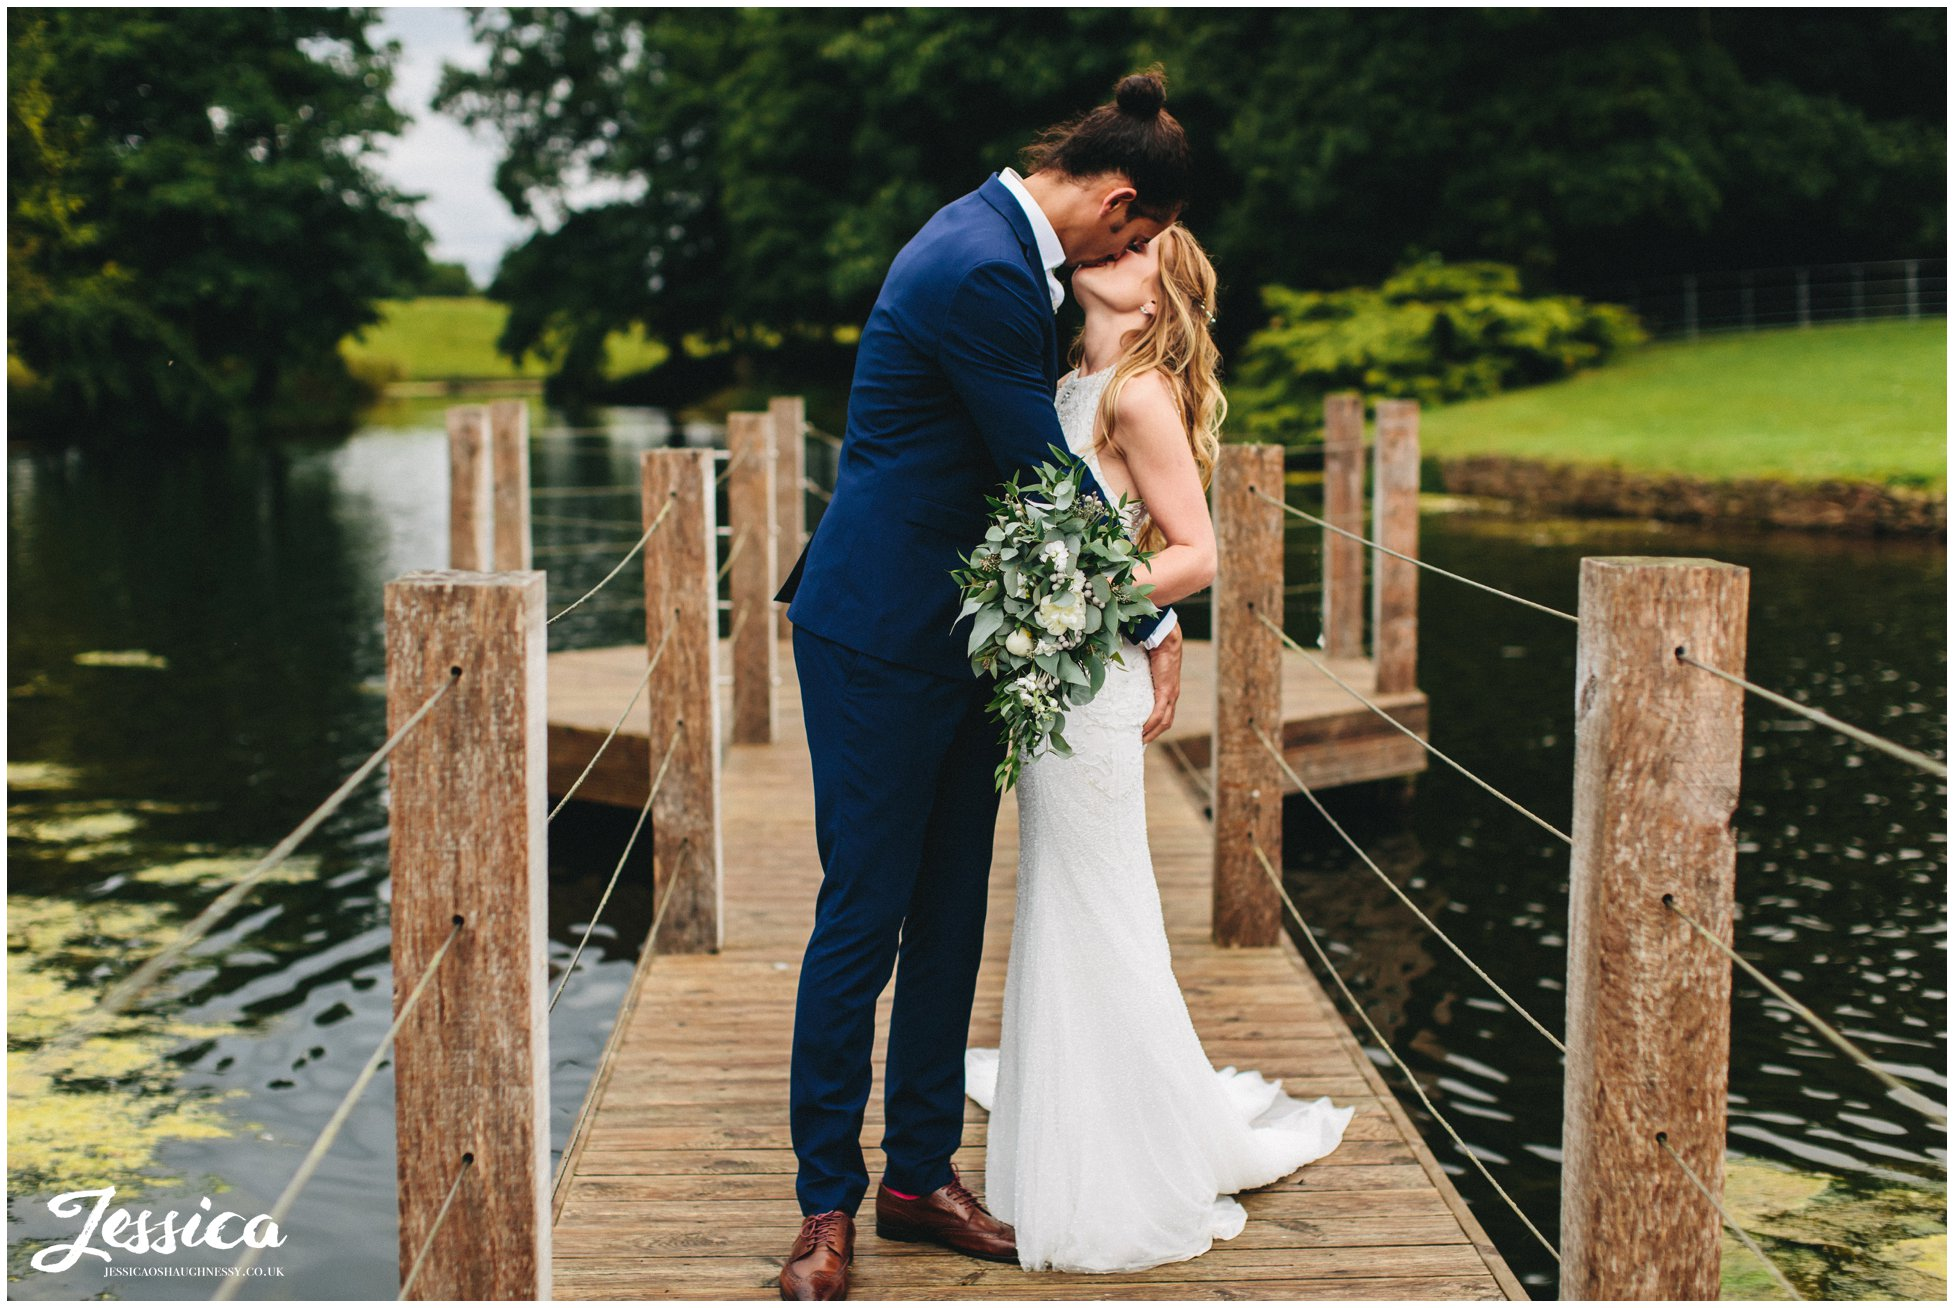 newly wed's kiss on the jetty at merrydale manor in cheshire